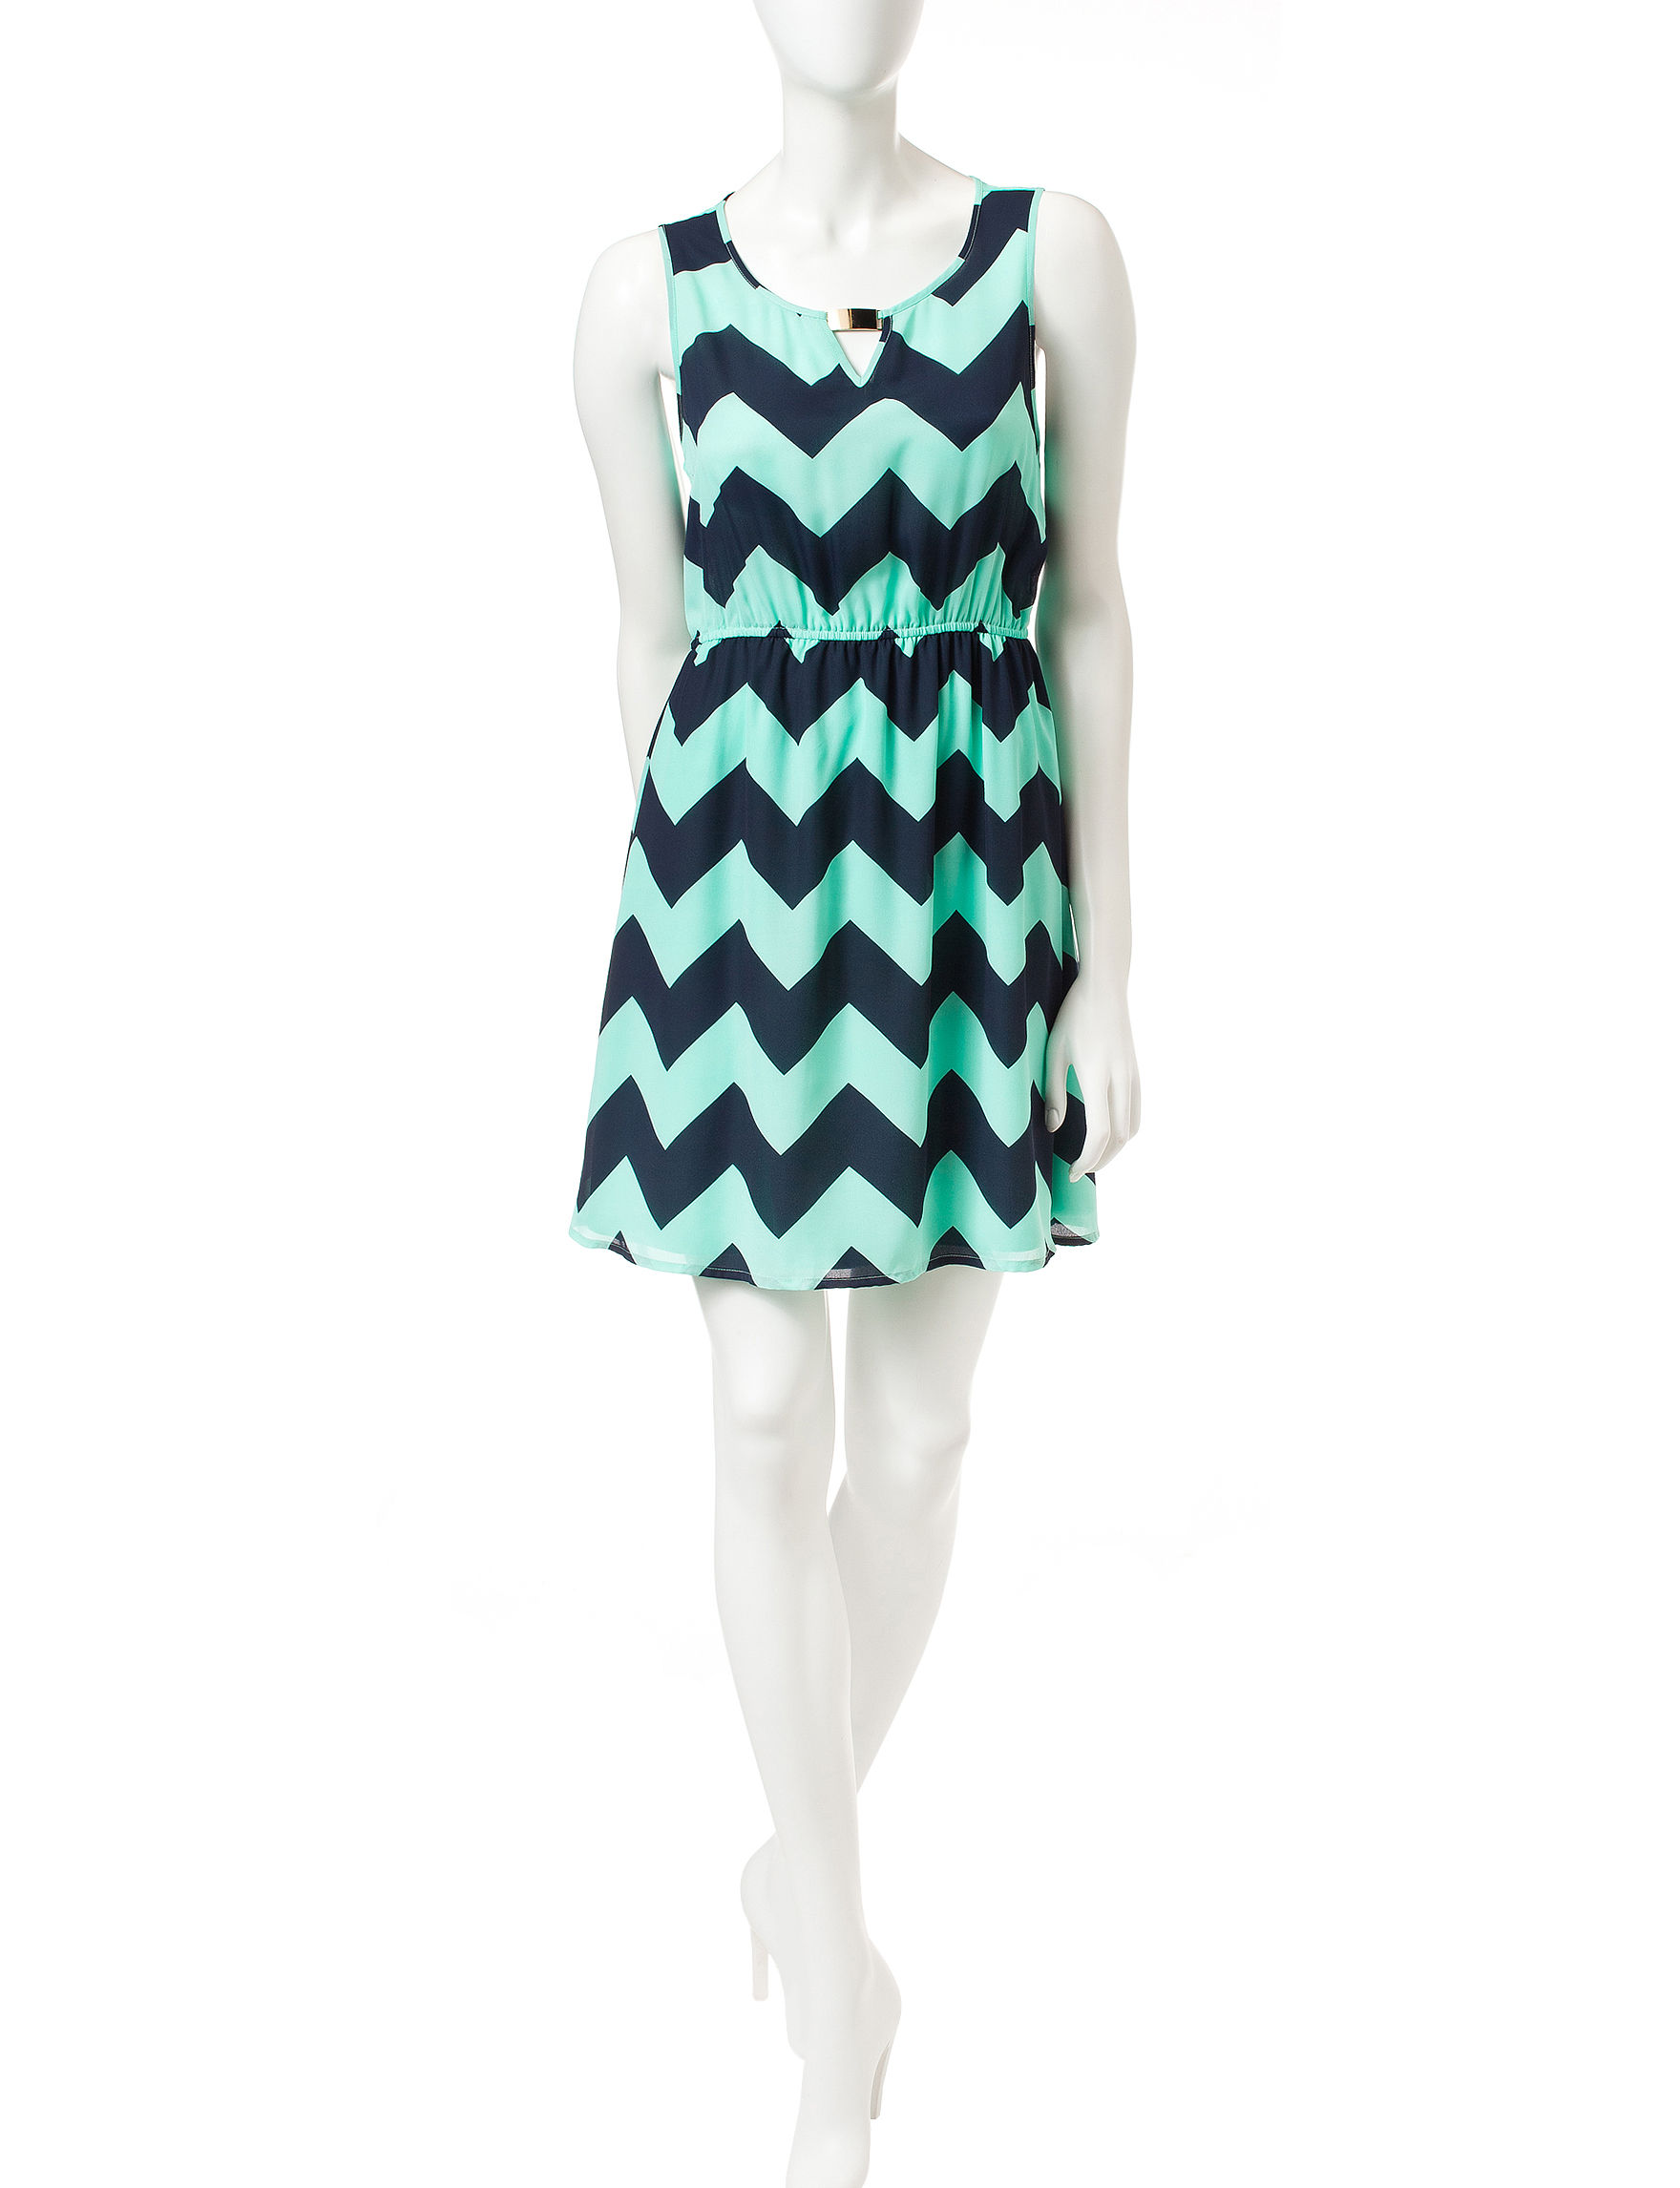 Justify Blue / Green Fit & Flare Dresses